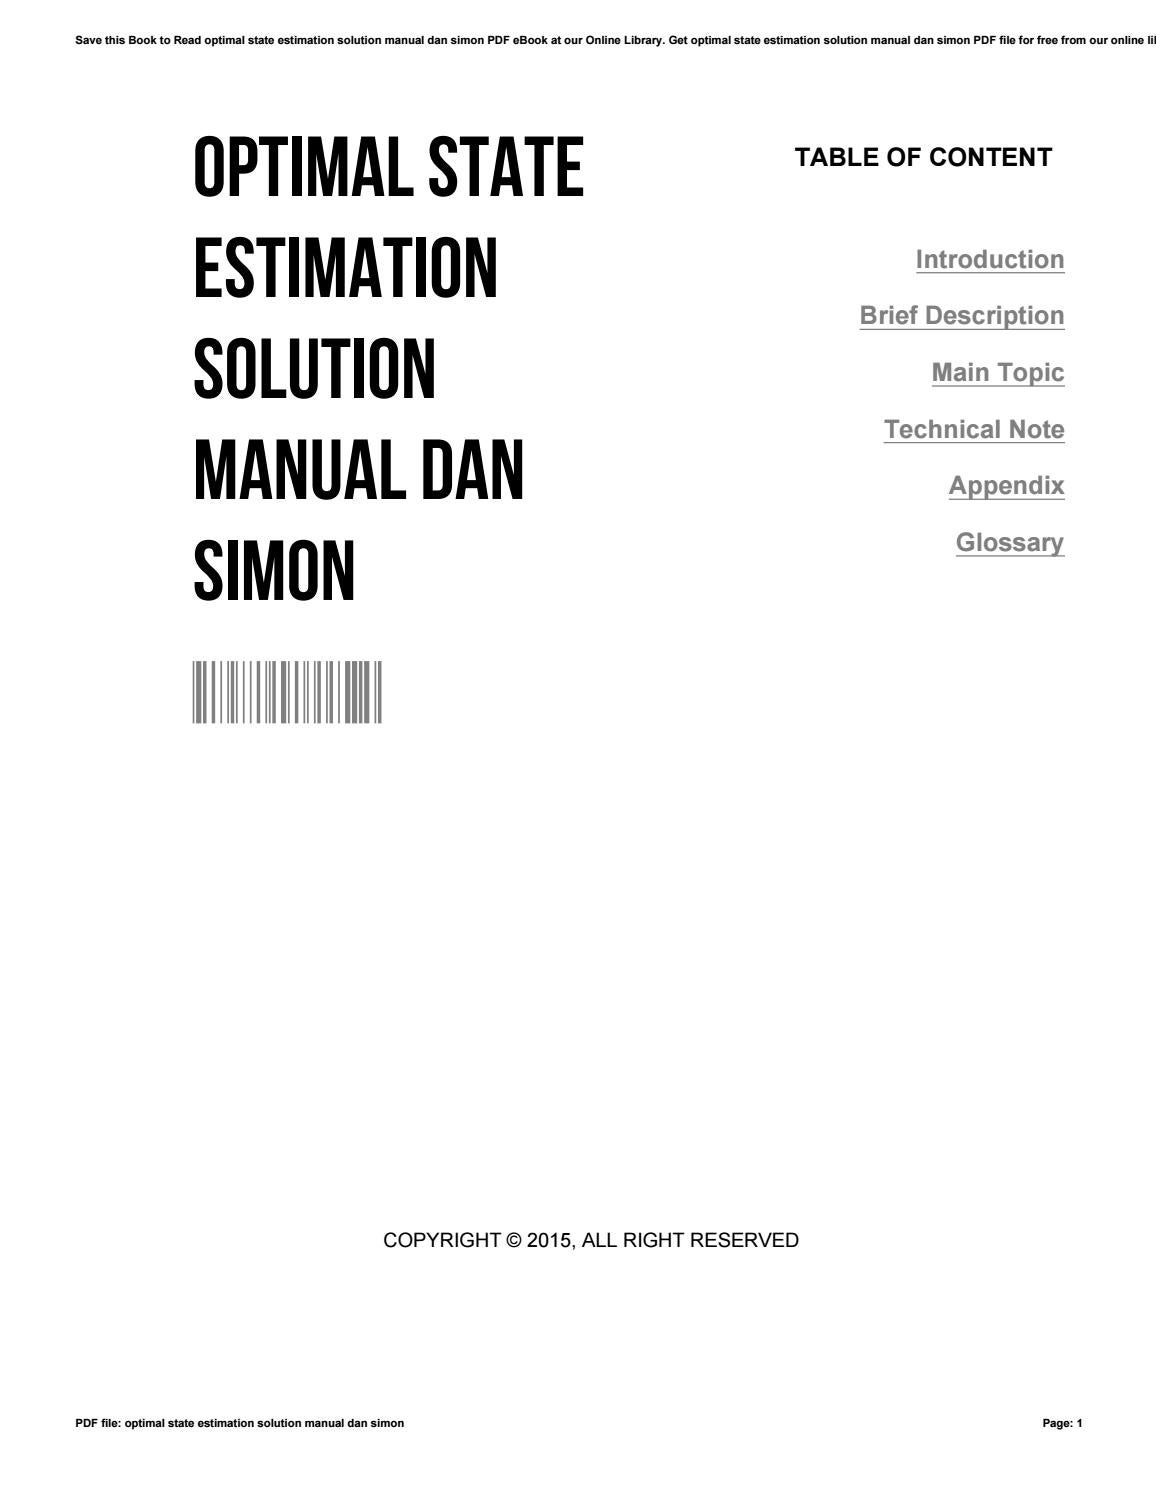 Optimal state estimation solution manual dan simon by